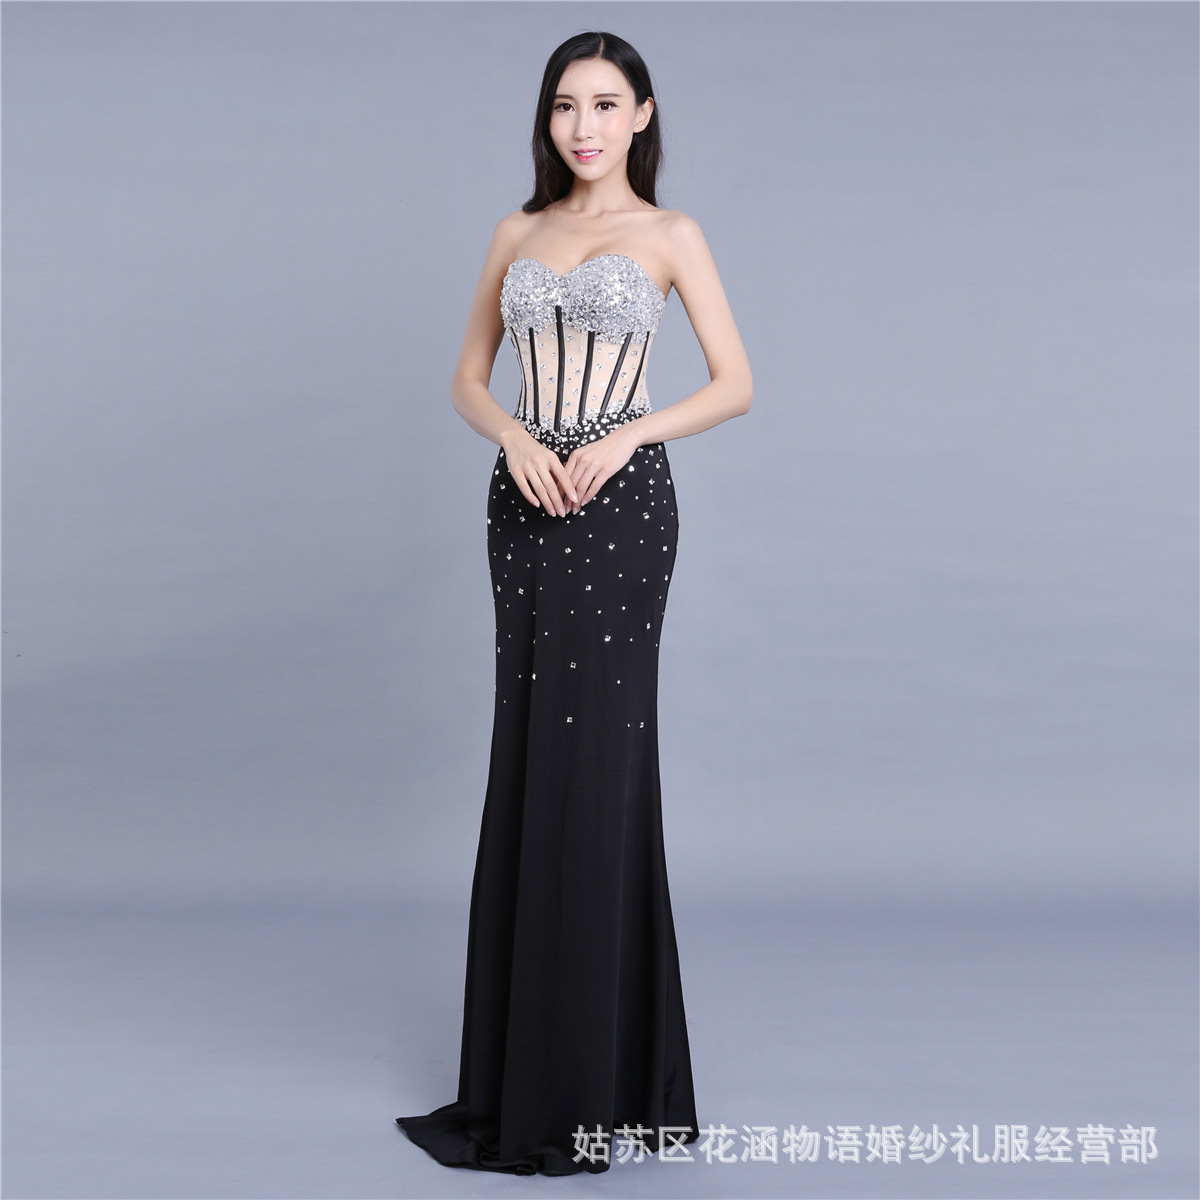 2237c976a5 2019 Sparkly Plus Mermaid African Prom Dresses with Gold Lace ...